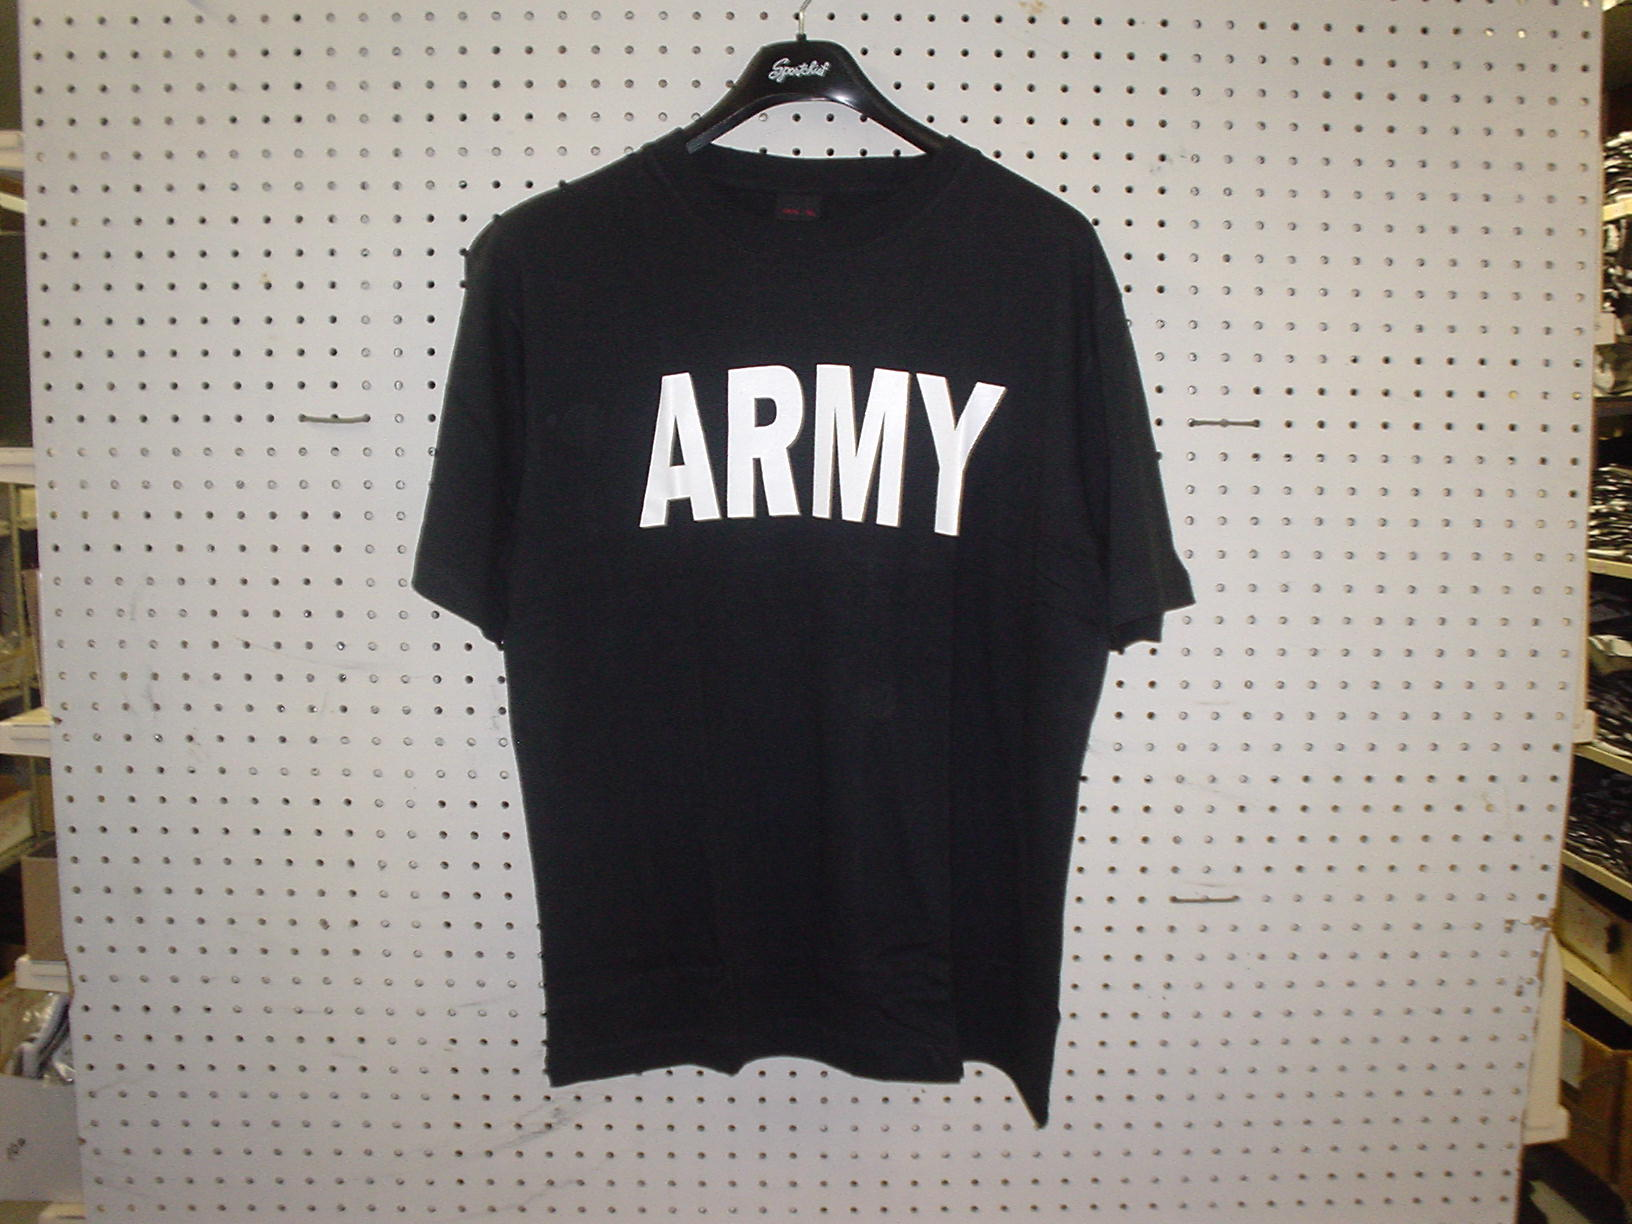 T-SHIRT WITH ARMY LOGO